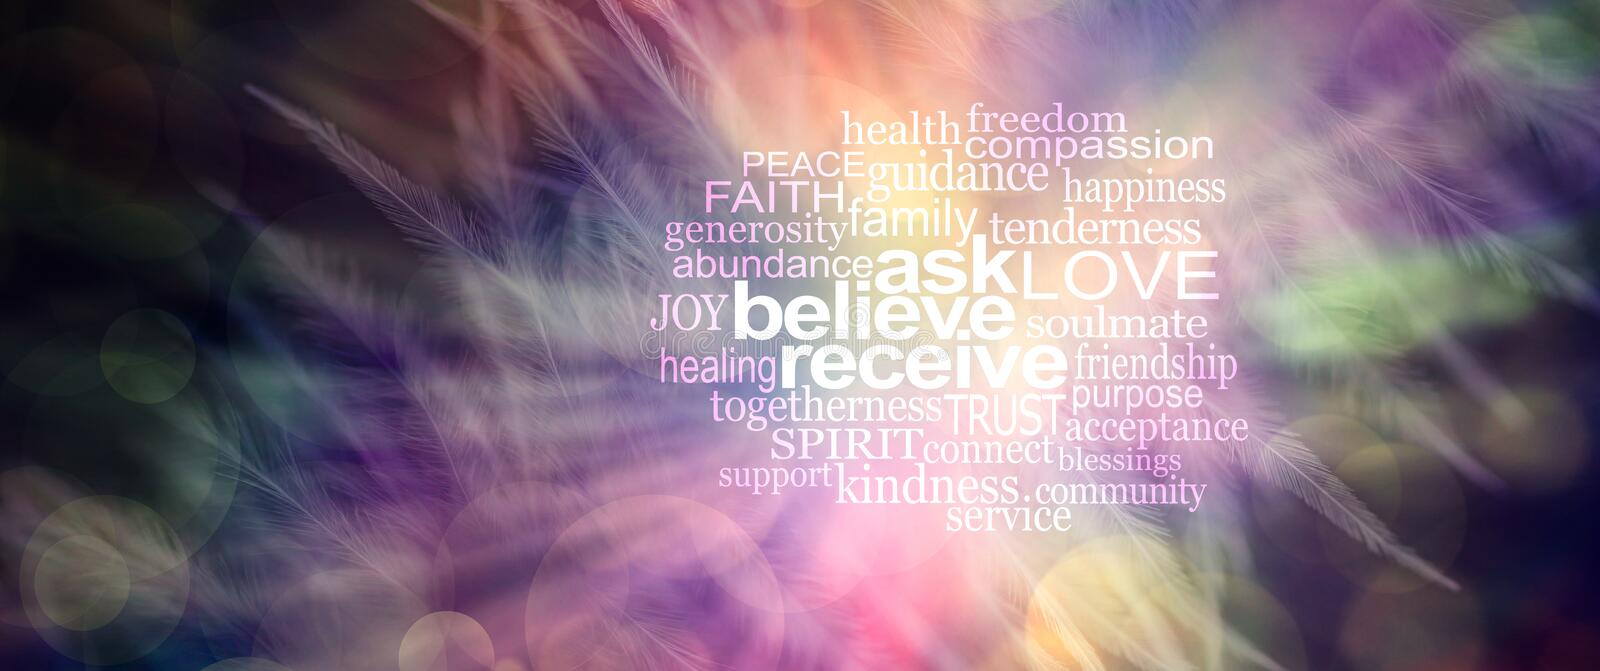 Ask believe receive word tag cloud. Pink, orange and yellow feather effect bokeh background with white words ASK BELIEVE RECEIVE surrounded by a relevant word royalty free stock image